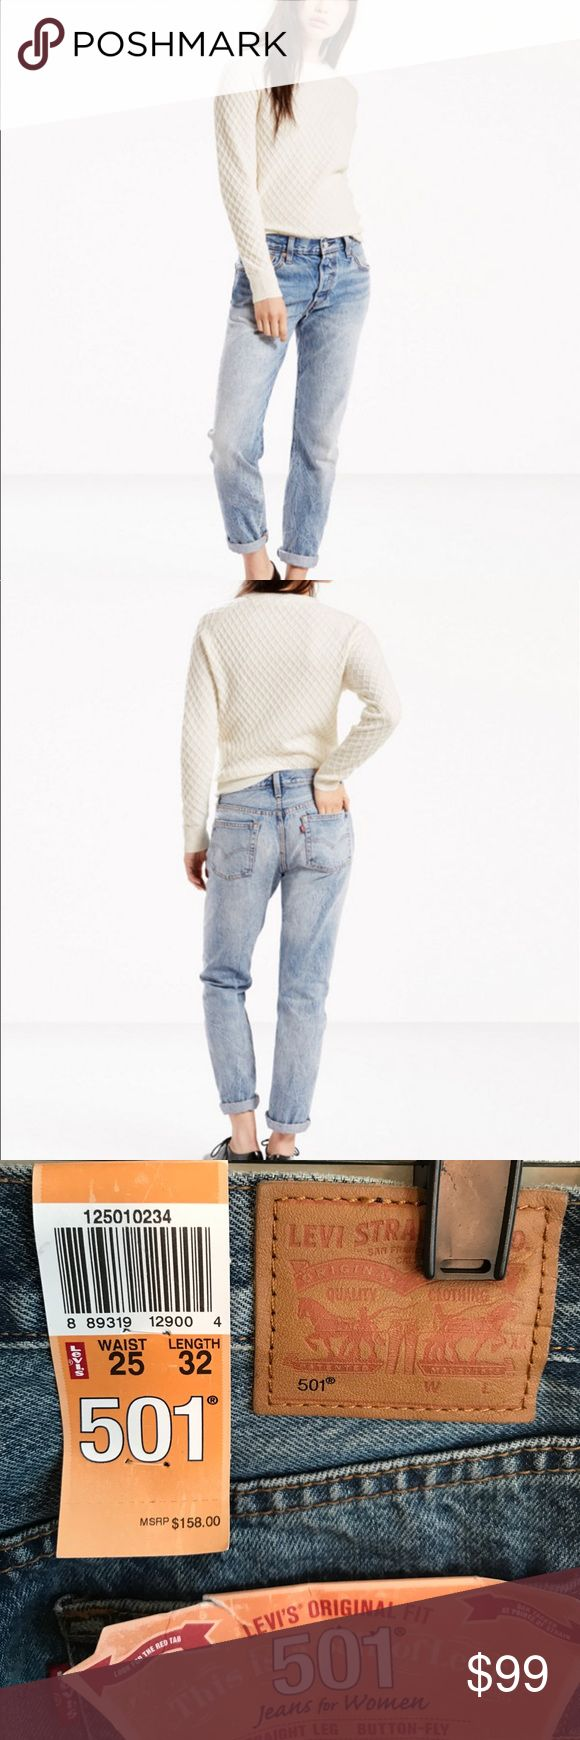 Levi's 501 Original Fit Because quality never goes out of style!! Levi's Original Fit 501 Jeans for Women. Straight Leg, Button fly. Slightly distressed 25Wx32L. Levi's Jeans Straight Leg